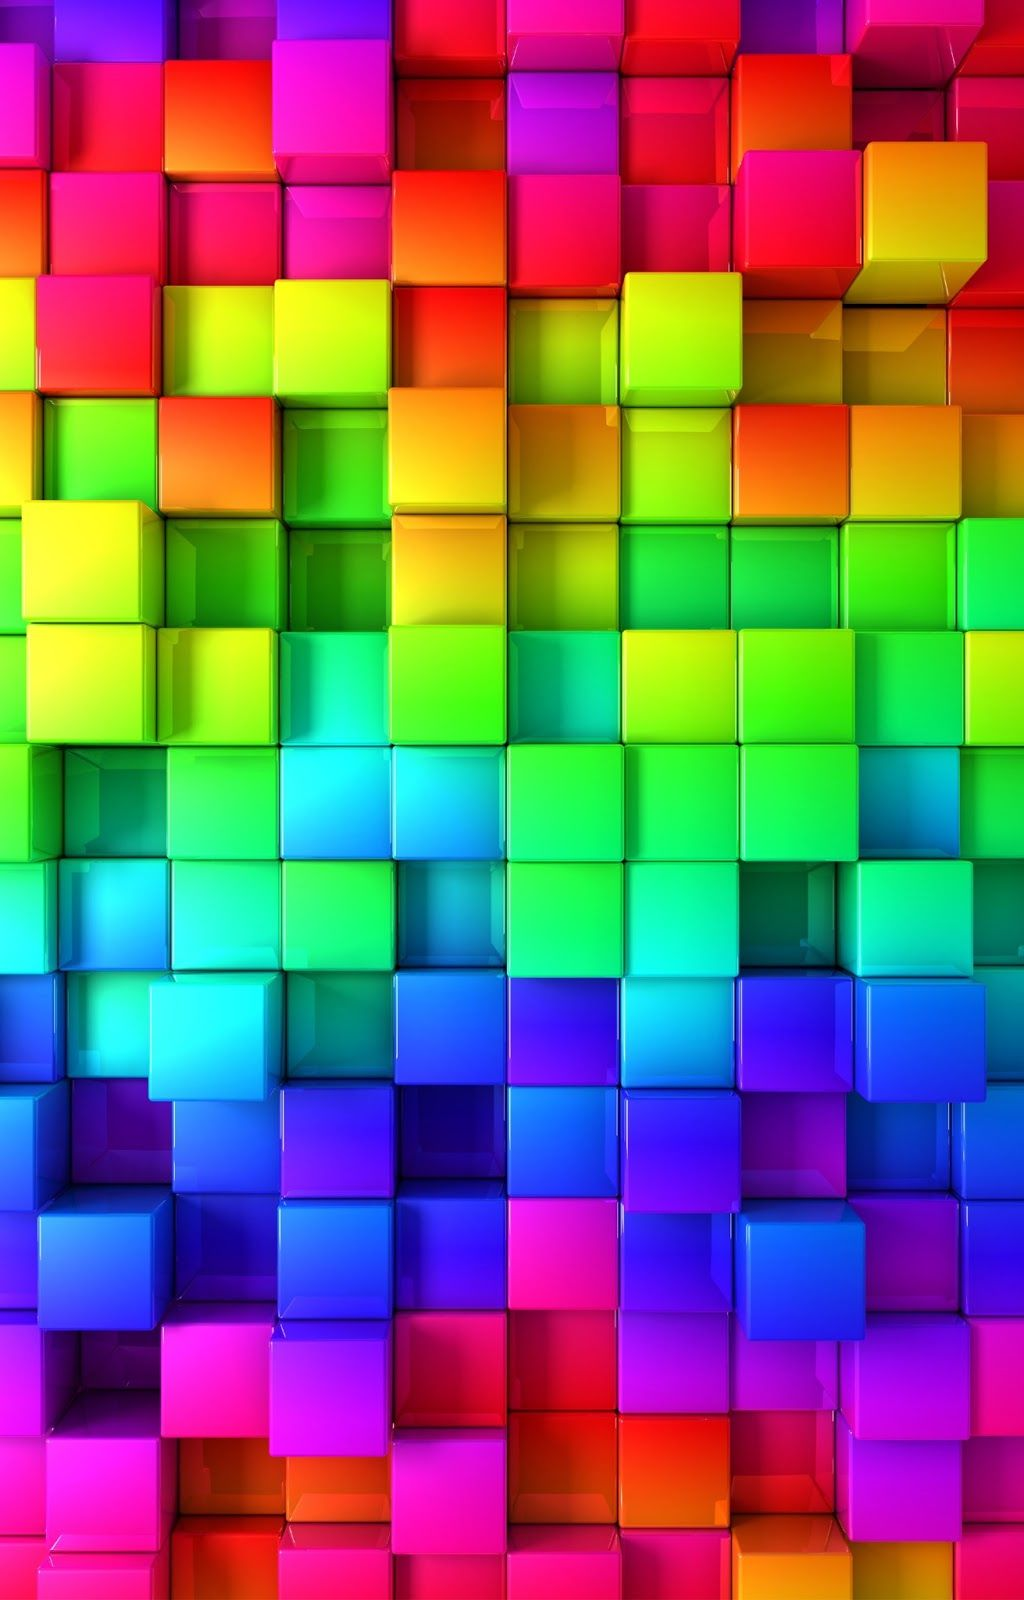 615 best images about cool colours on Pinterest | The ...  |Bright Rainbow Colors